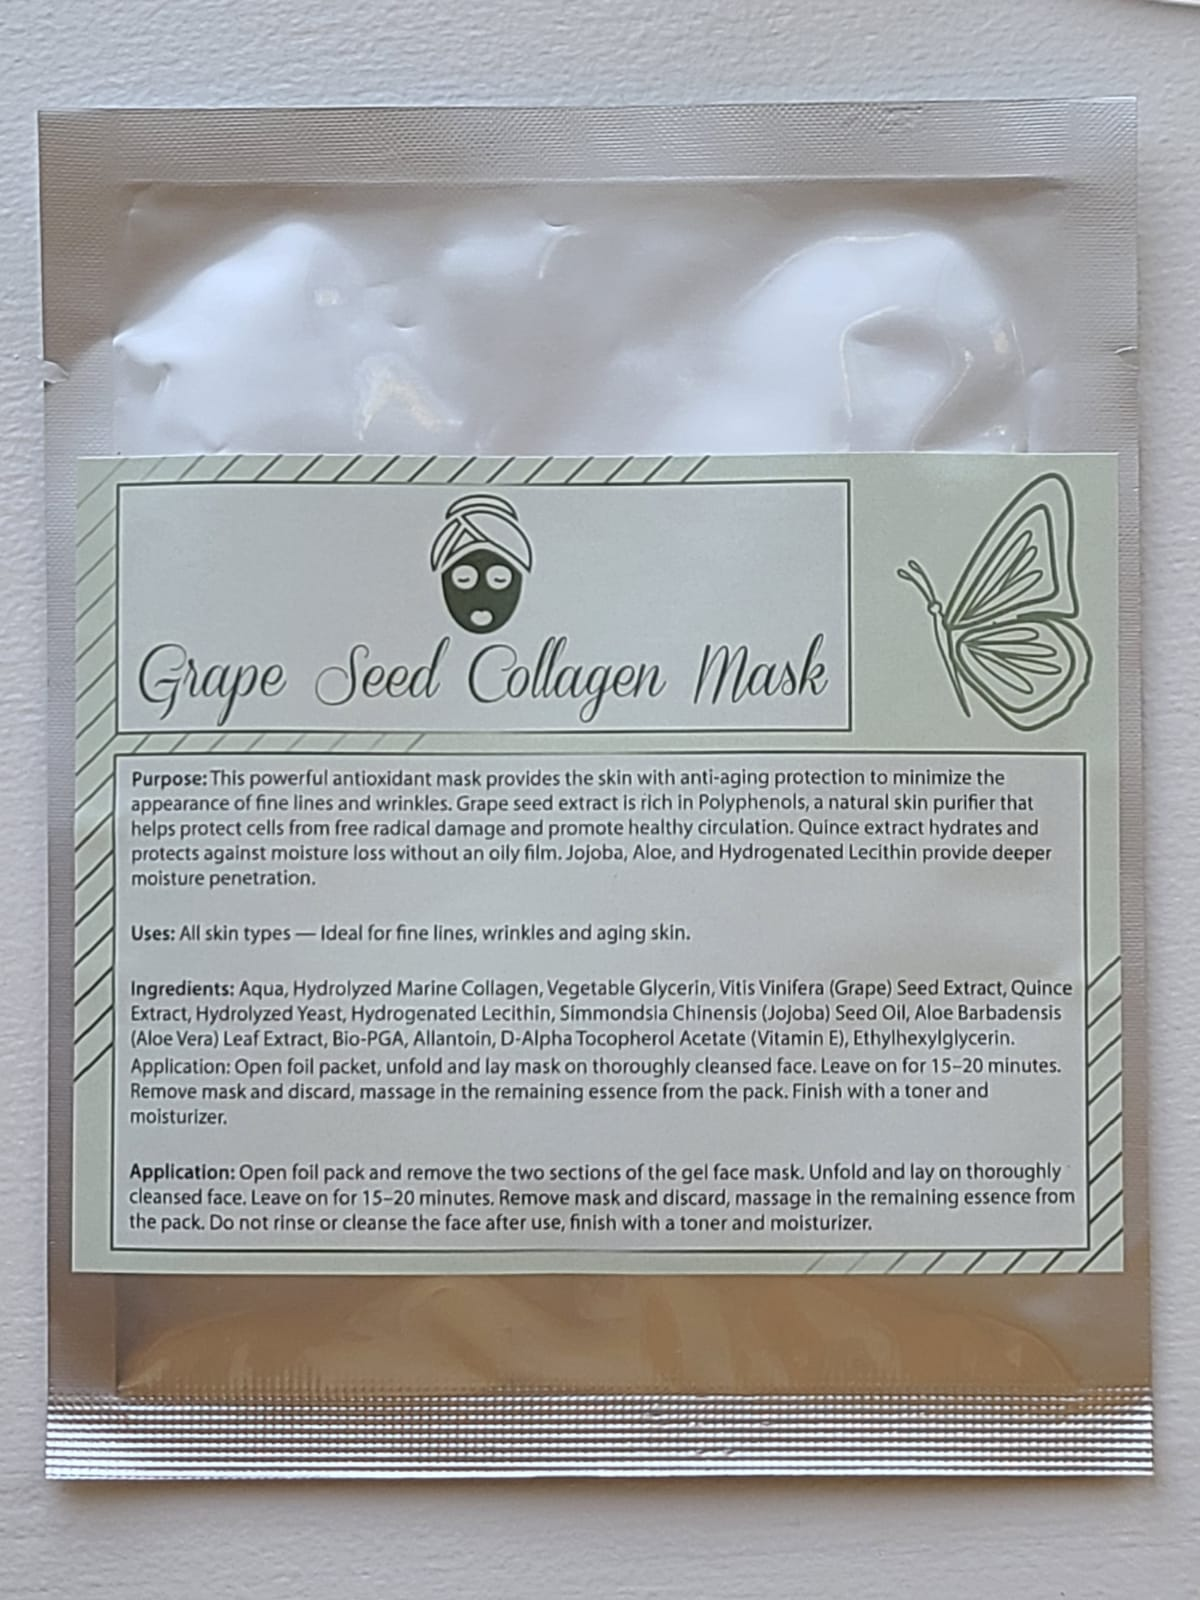 Grape Seed Collagen Mask